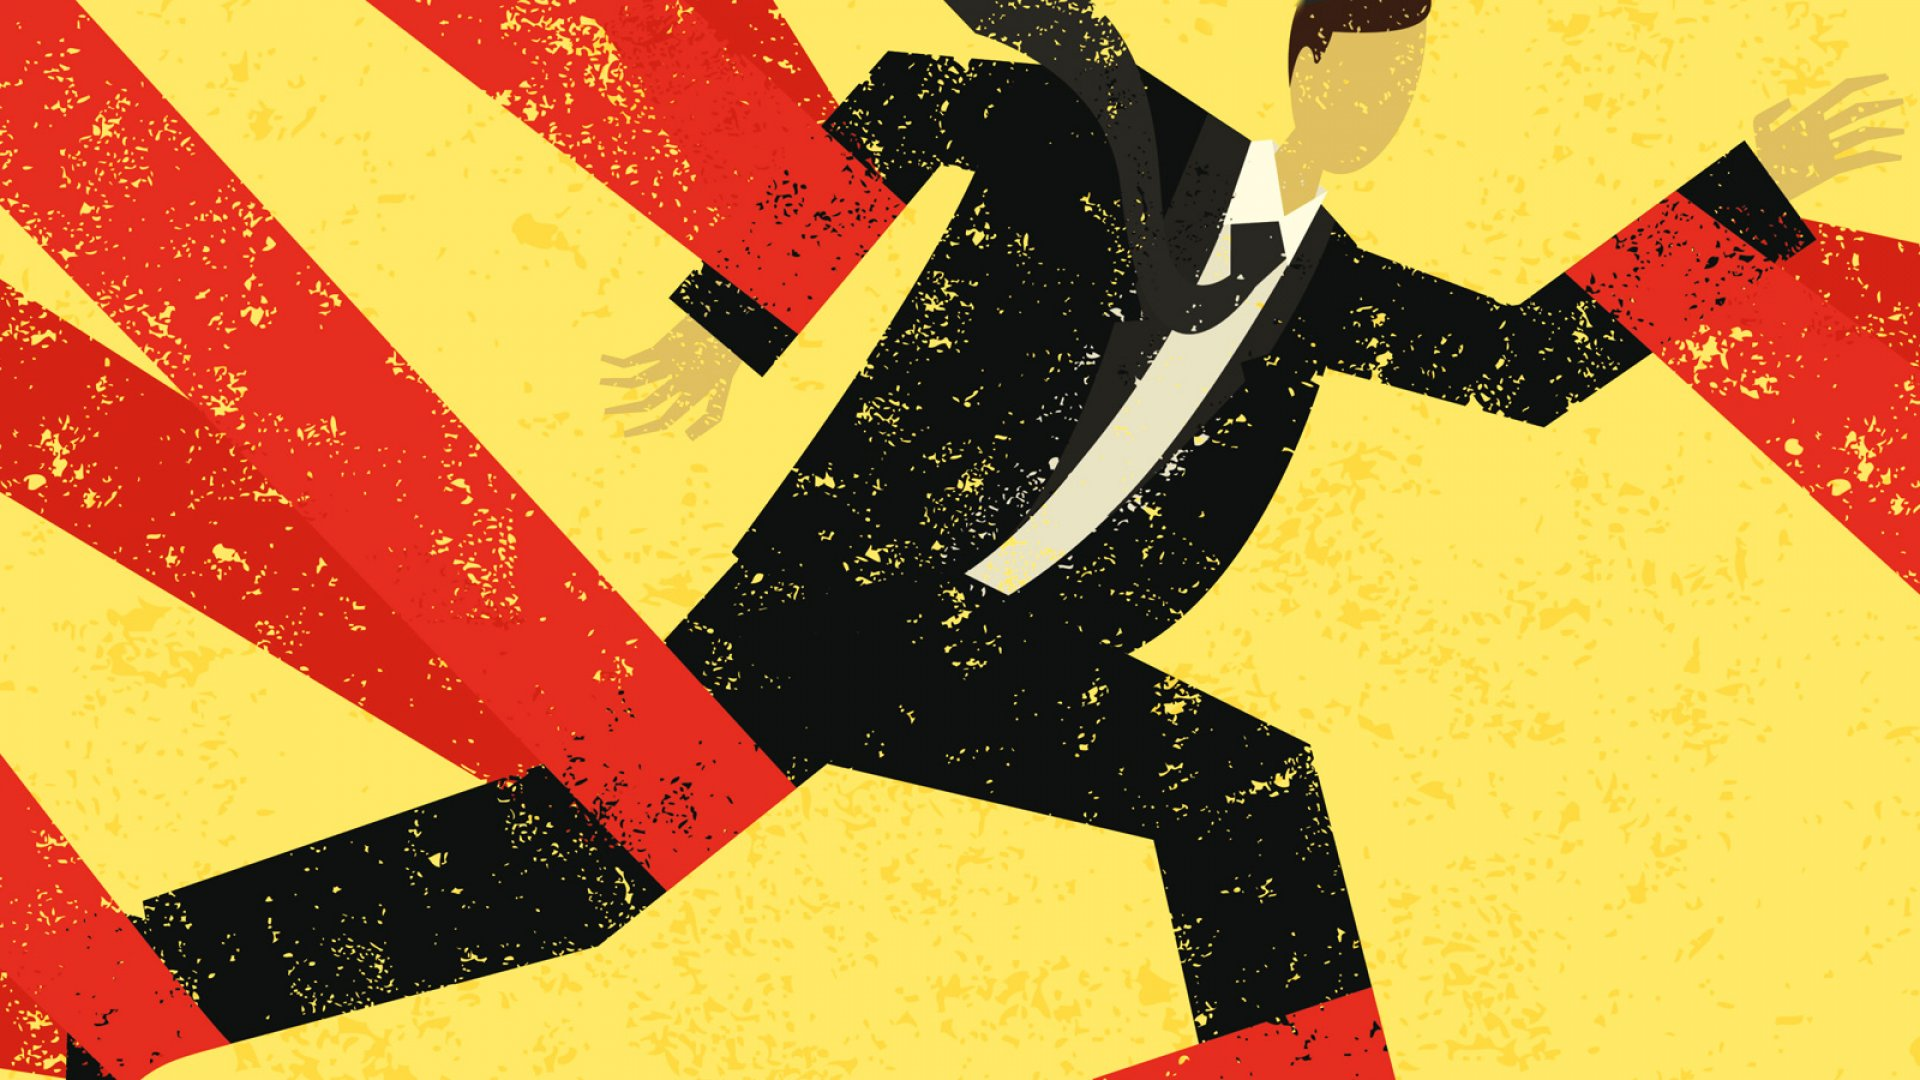 Bureaucracy Creeping Into Your Company? 6 Ways to Strip It Out